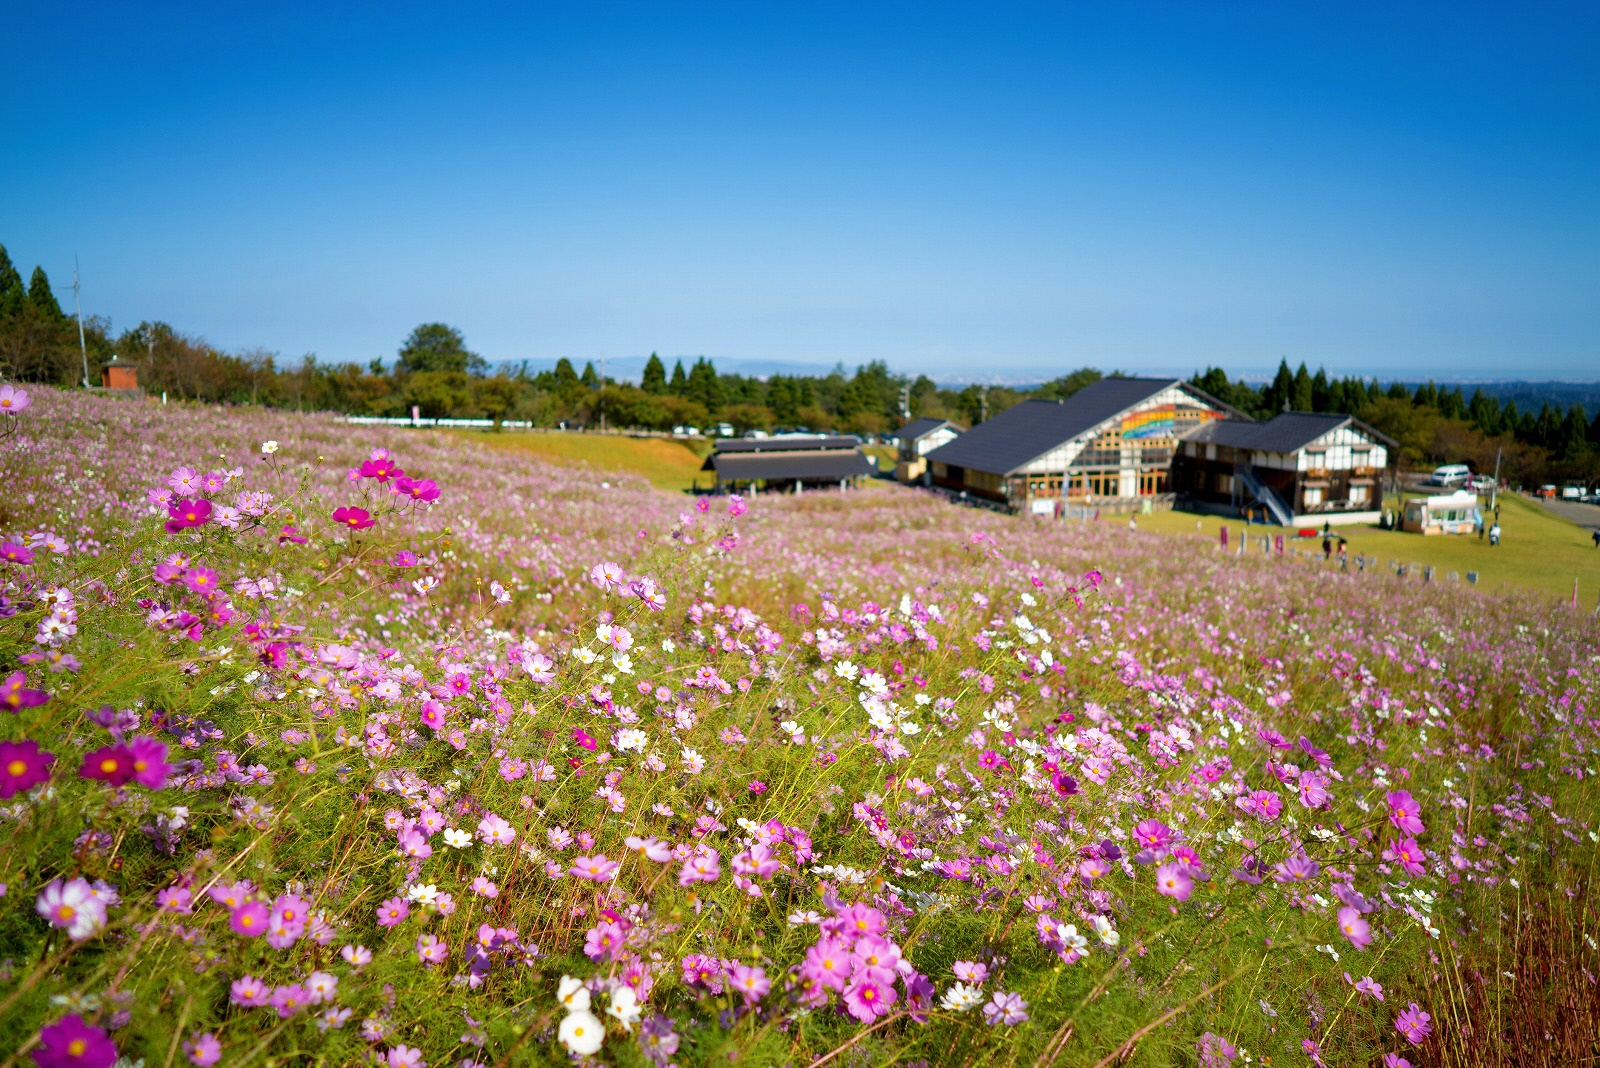 Strolling through the Cosmos Flowers at Tonami Yumenotaira